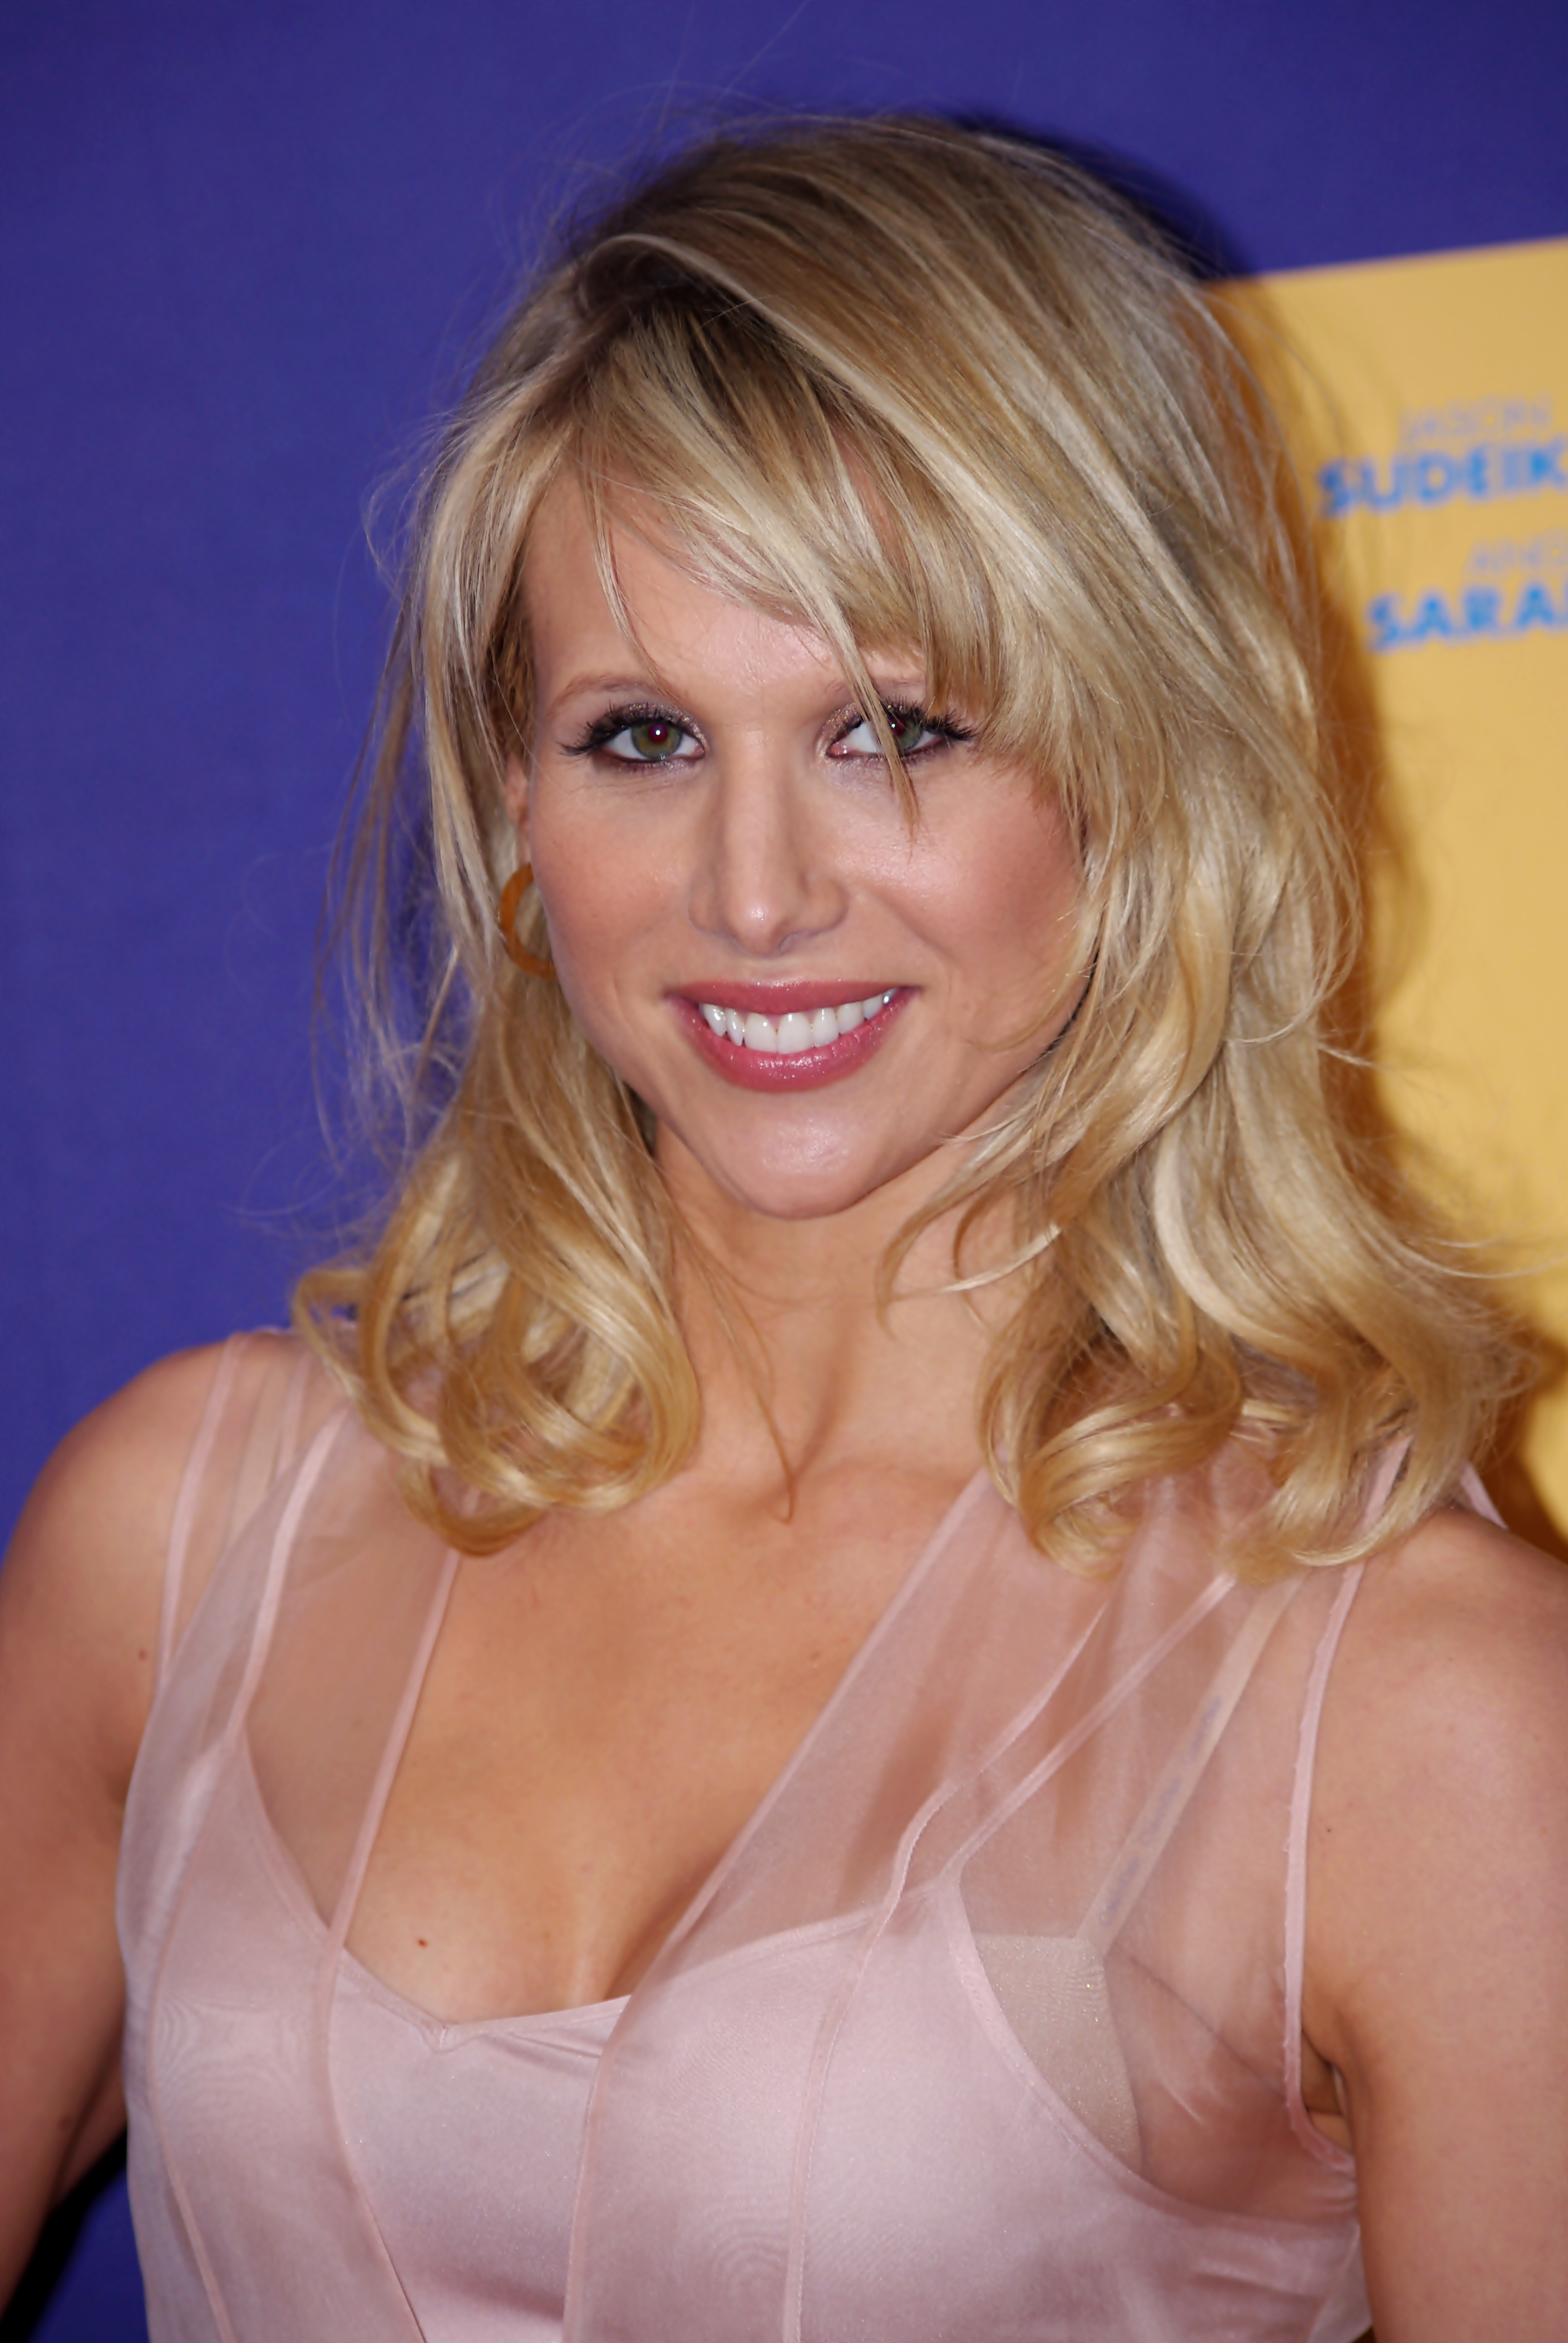 Description Lucy Punch 2011 Shankbone.JPG